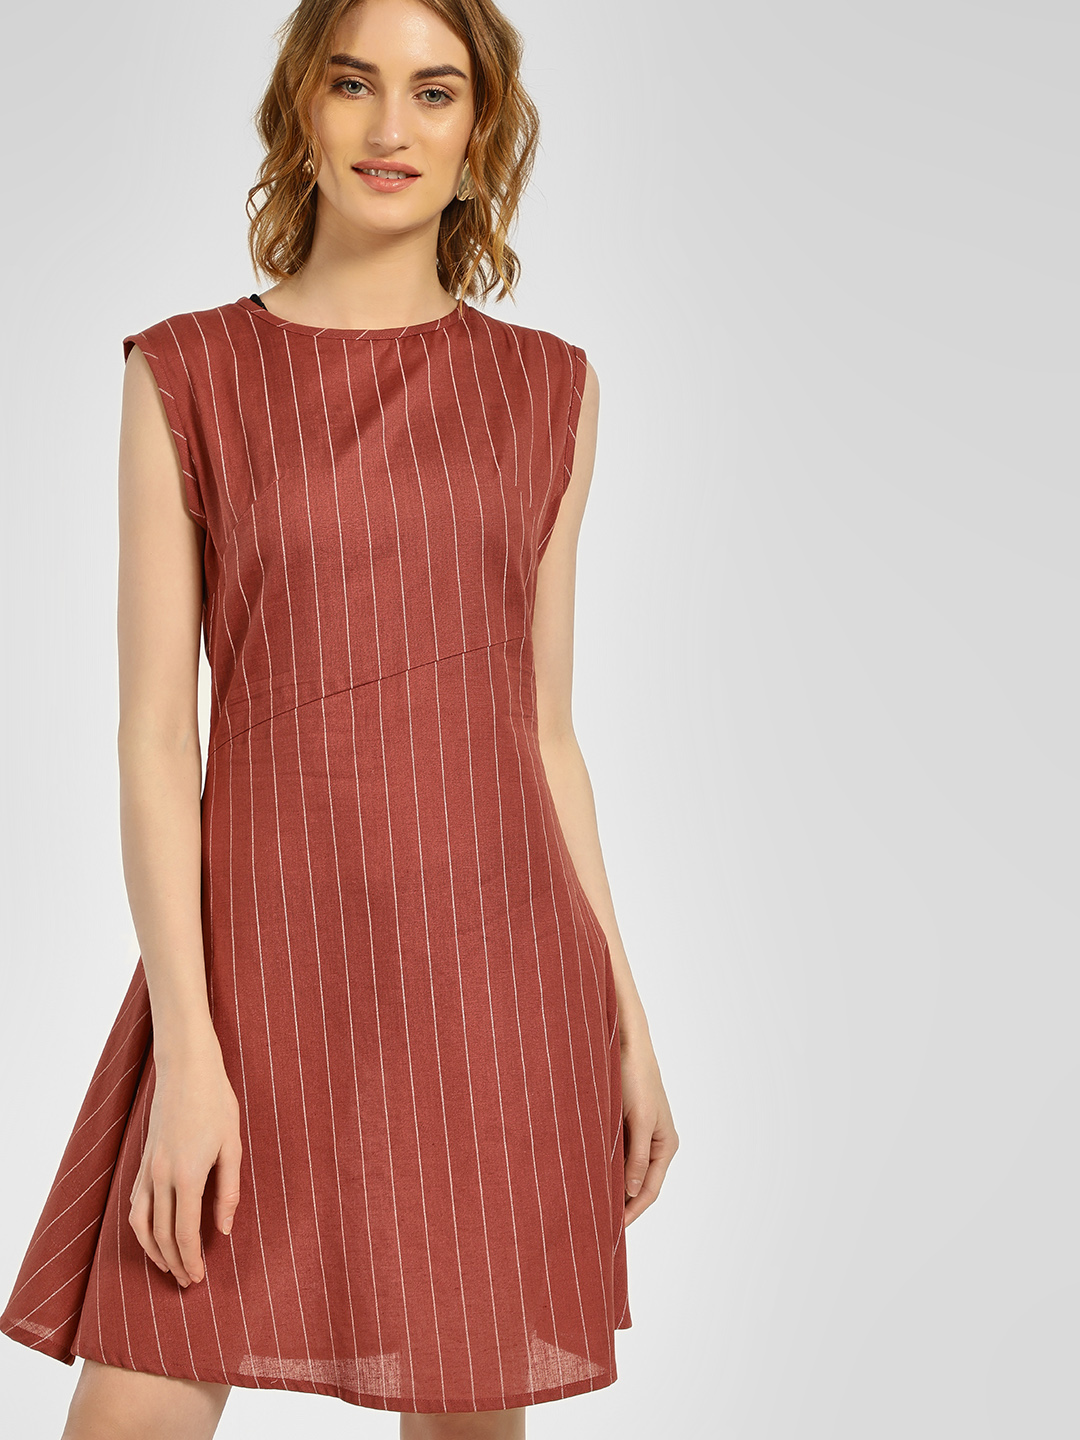 Closet Drama Rust Striped Sleeveless Shift Dress 1